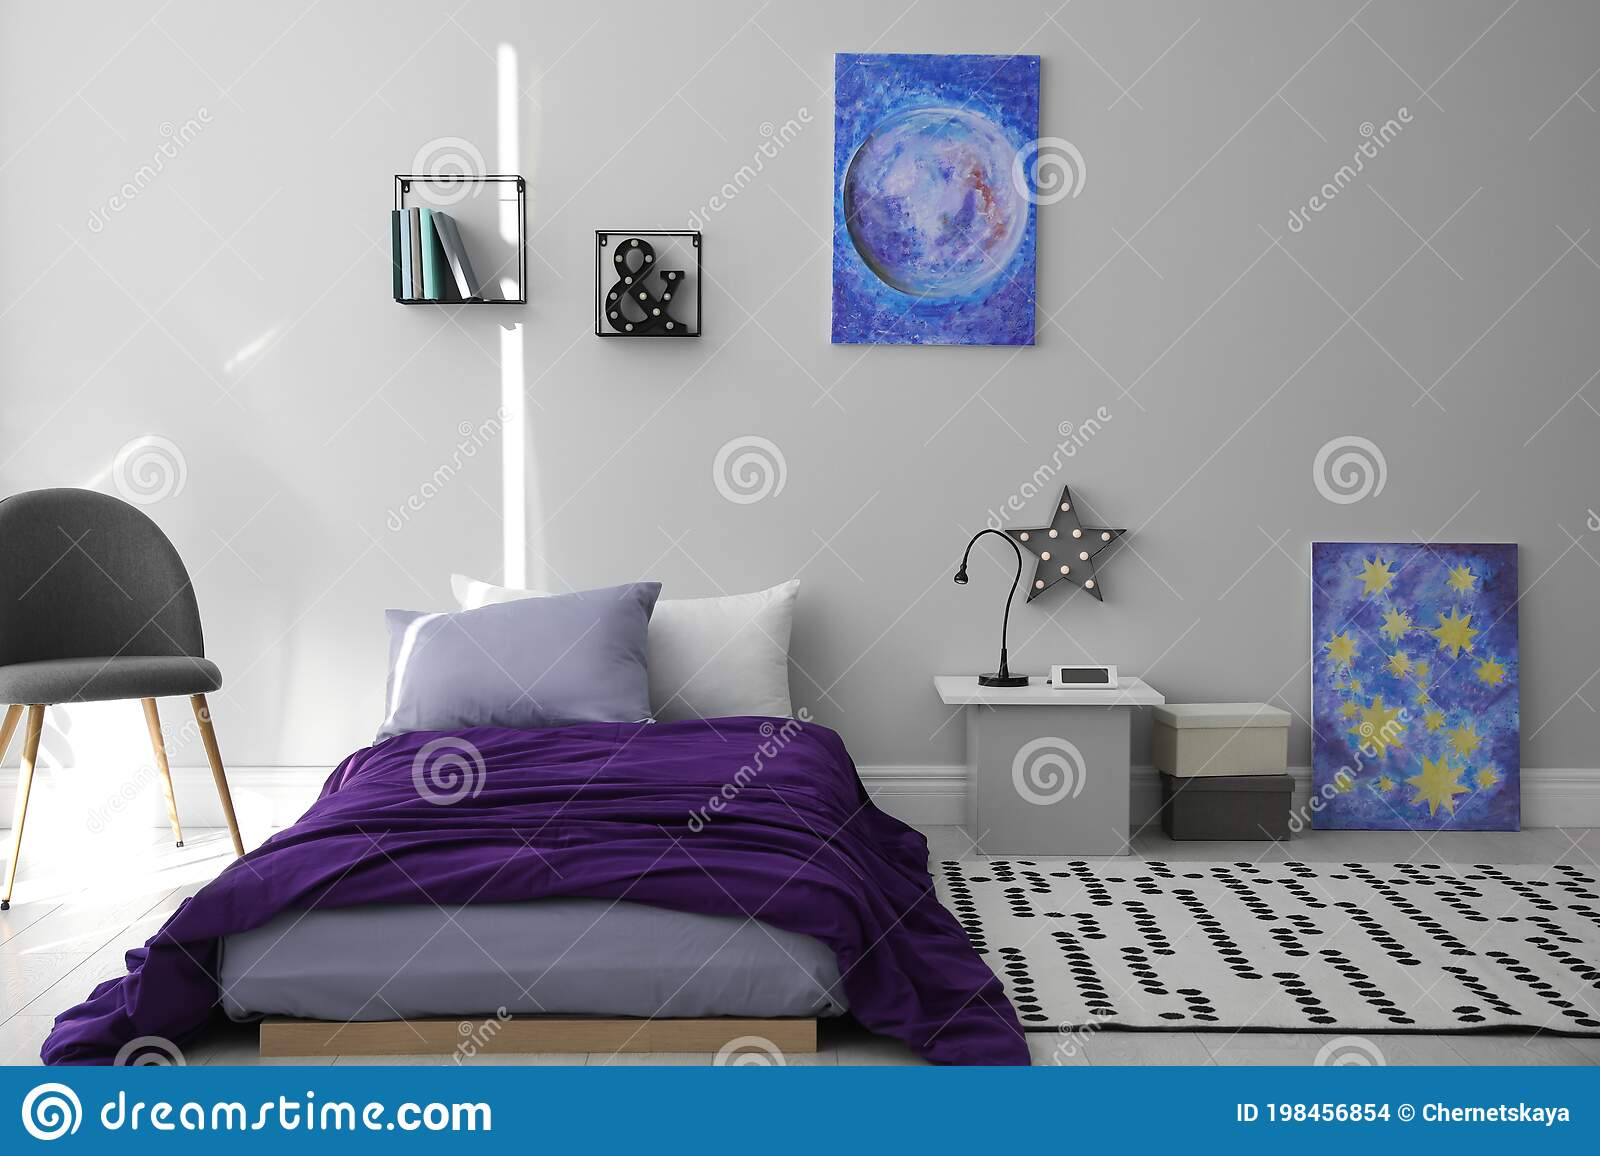 Modern Teenager S Room Interior With Bed And Stylish Design Elements Stock Photo Image Of Indoors Child 198456854